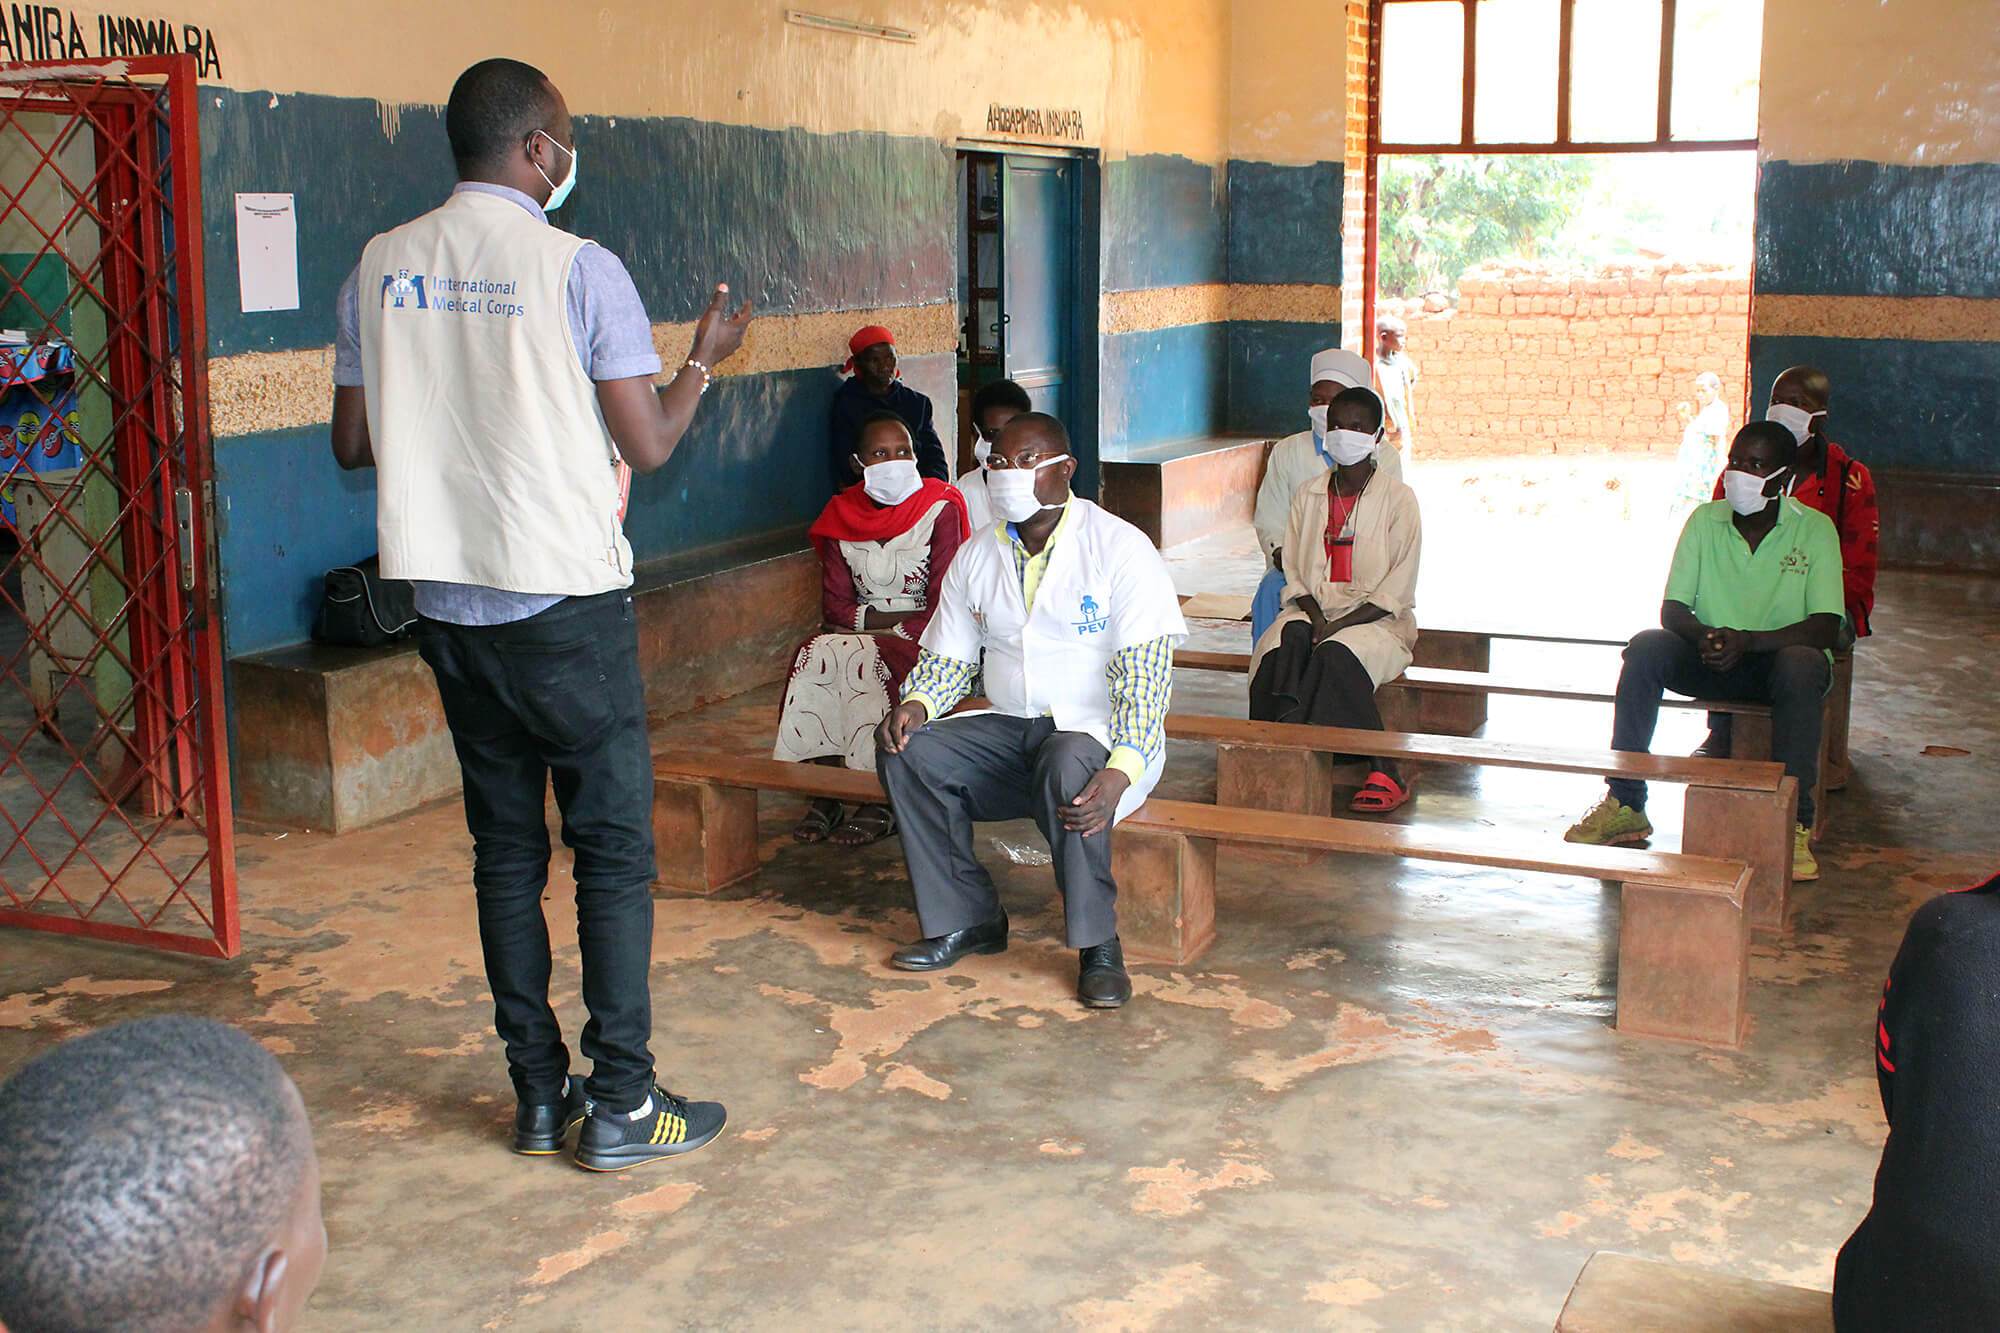 Mr. Alexis training healthcare providers on the Ministry of Health recommended handwashing techniques in Burundi.